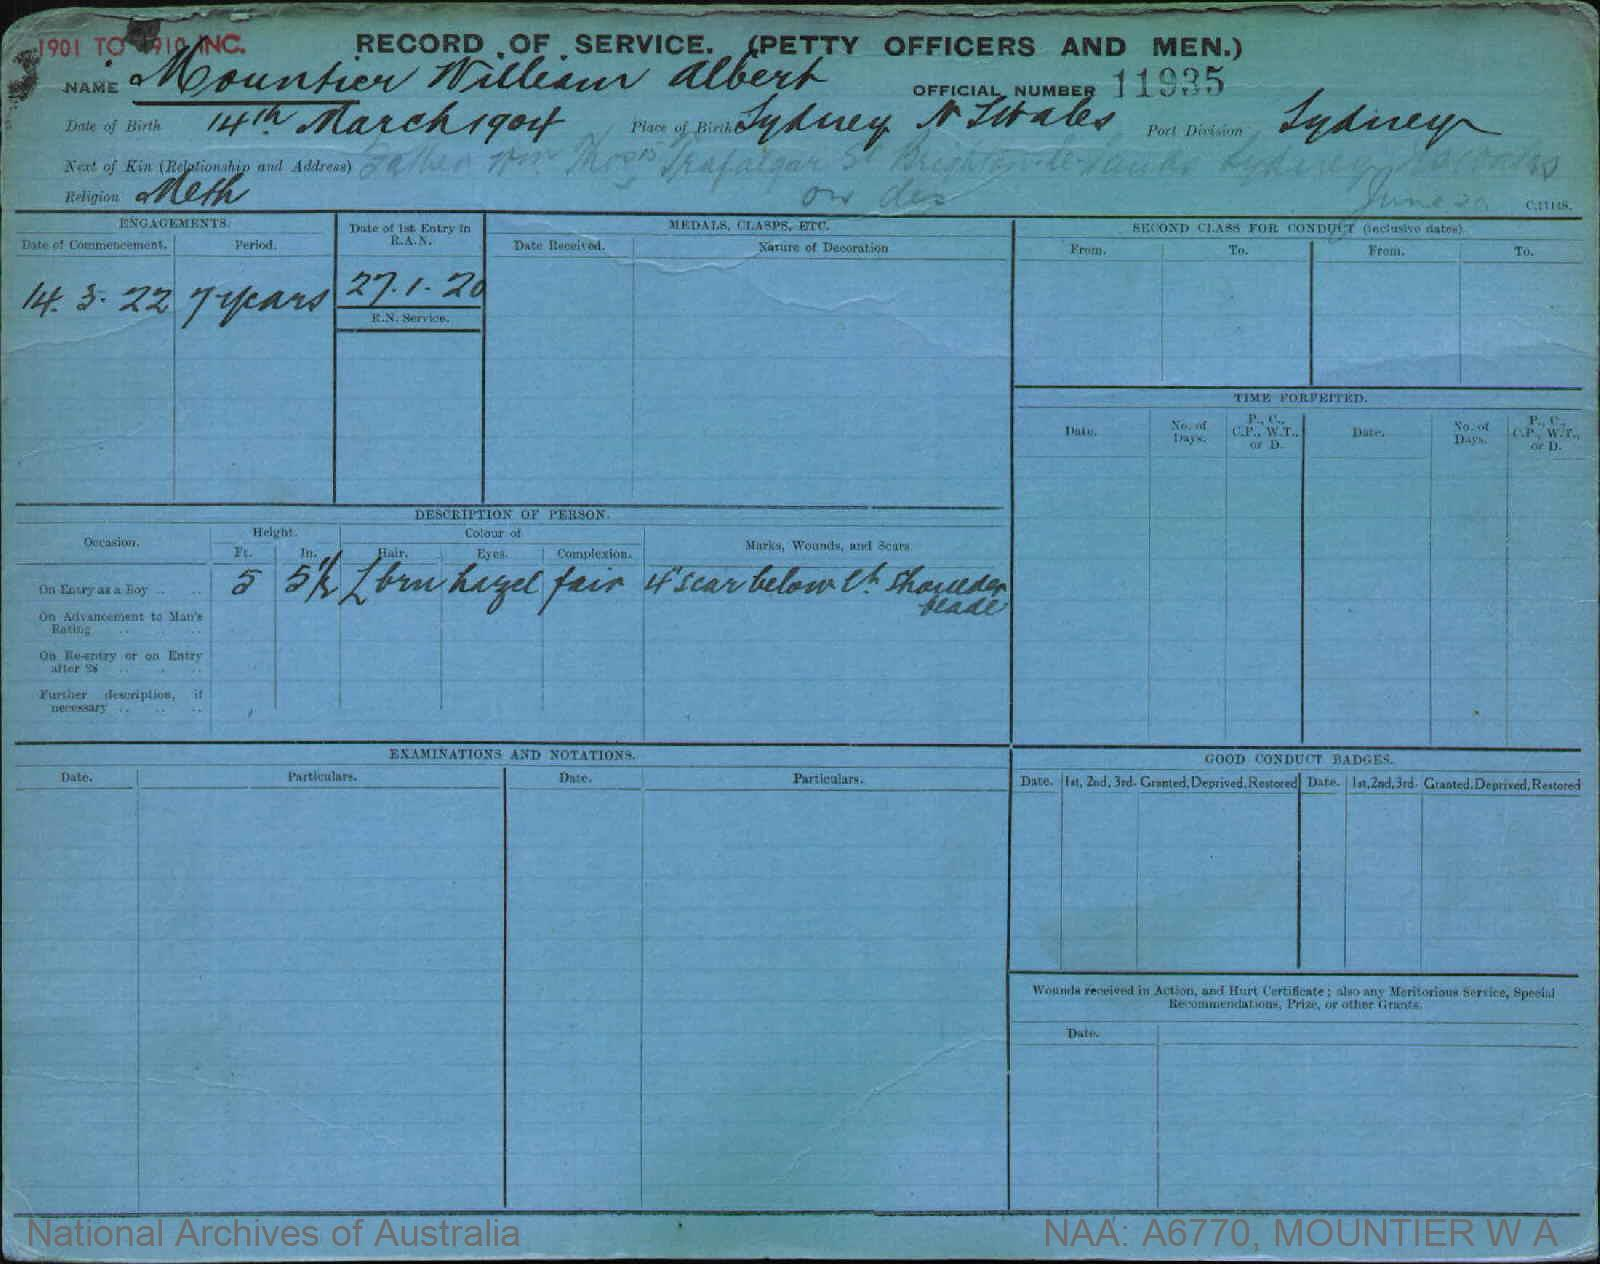 MOUNTIER WILLIAM ALBERT : Service Number - 11935 : Date of birth - 14 Mar 1904 : Place of birth - SYDNEY NSW : Place of enlistment - SYDNEY : Next of Kin - W